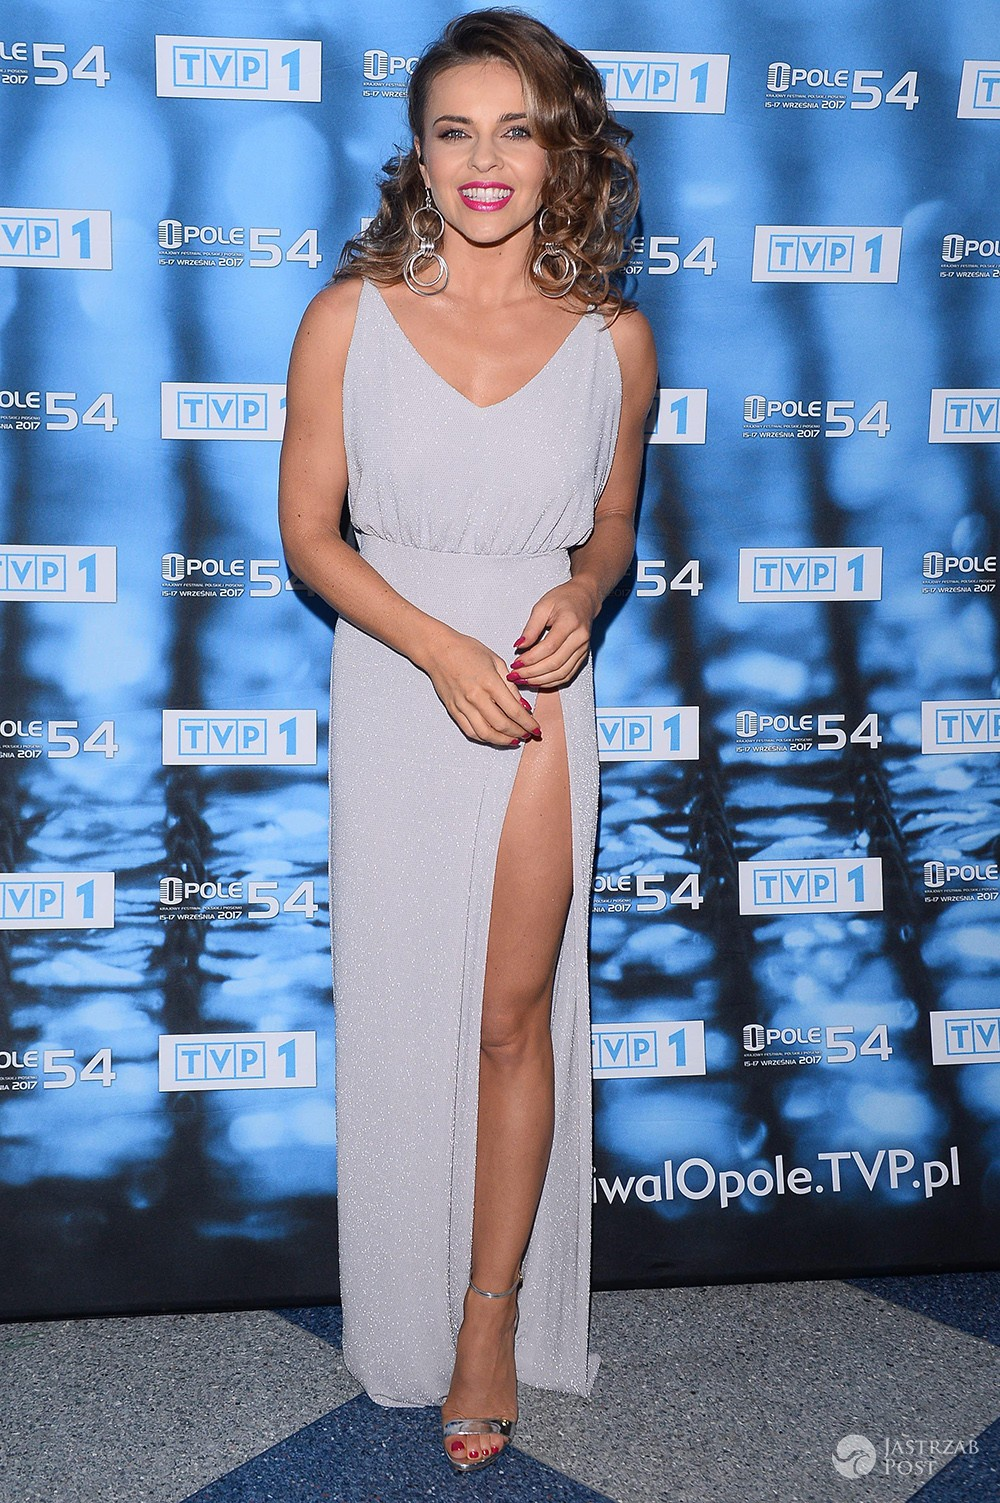 Edyta Herbuś - Opole 2017, After Party